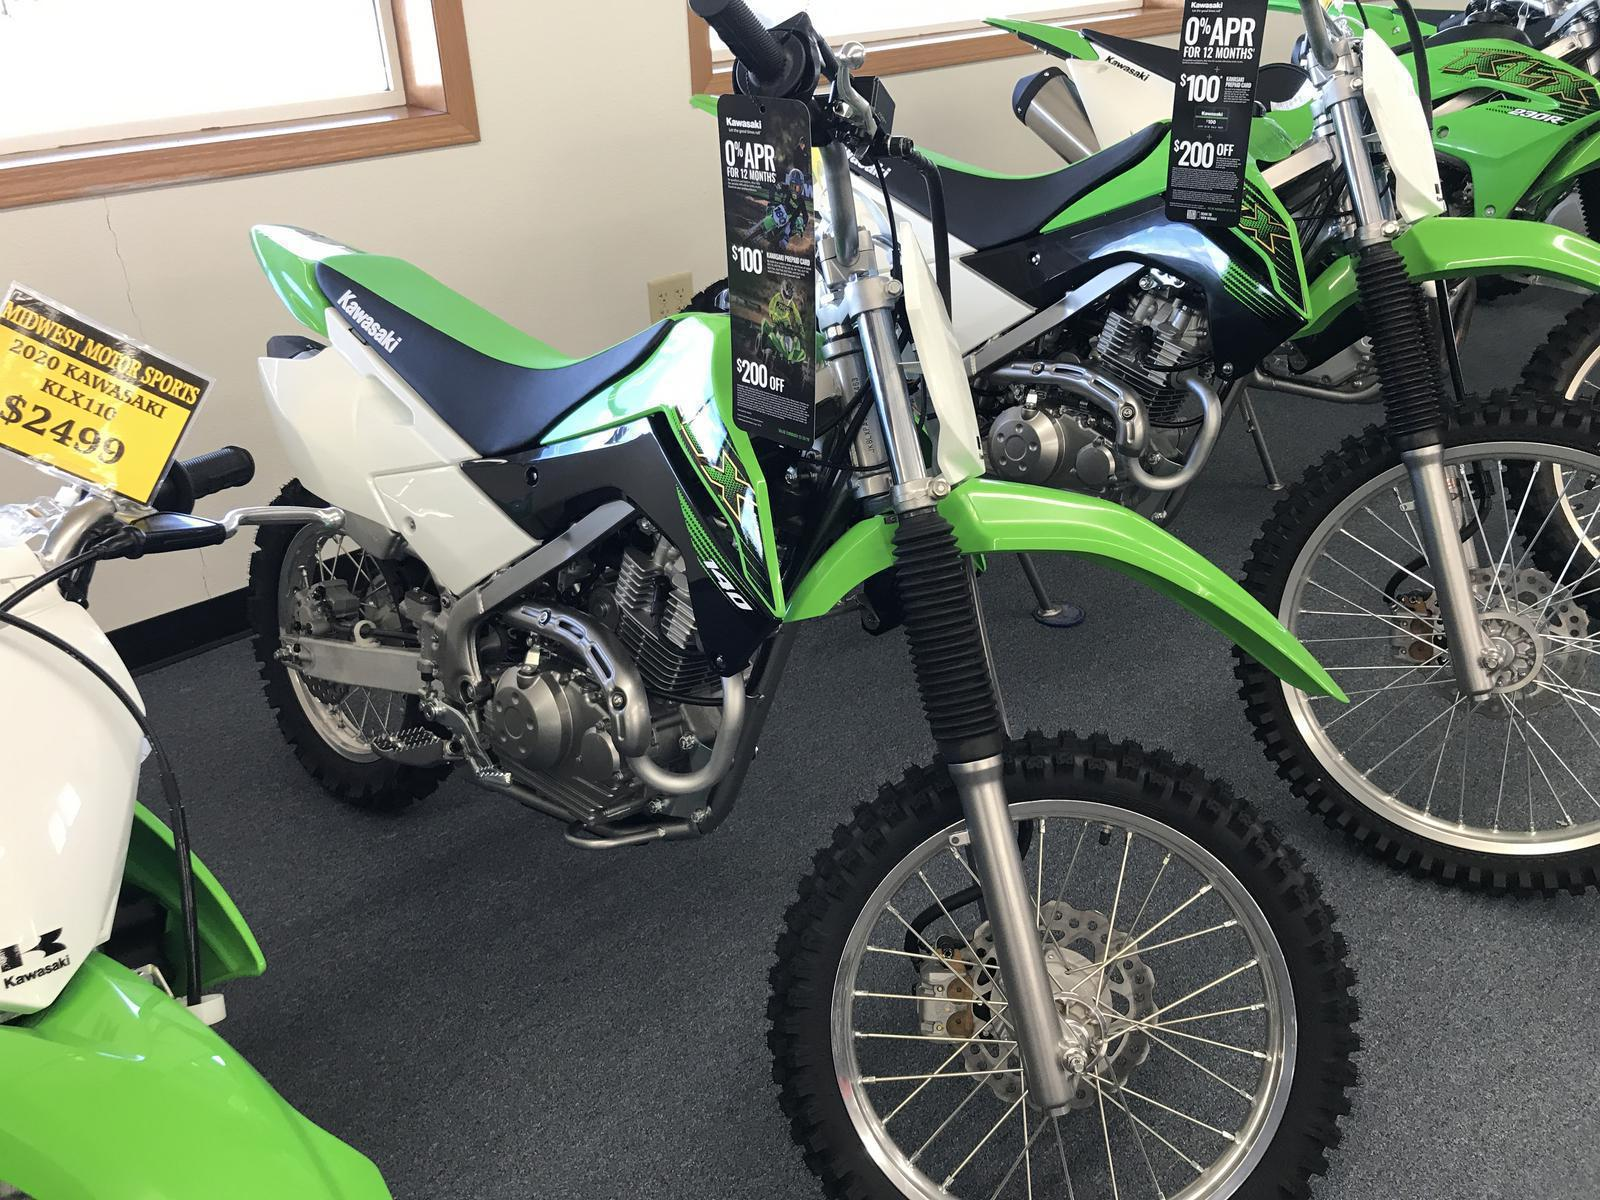 Magnificent Inventory From Kawasaki Midwest Motor Sports Hartford Il Pabps2019 Chair Design Images Pabps2019Com